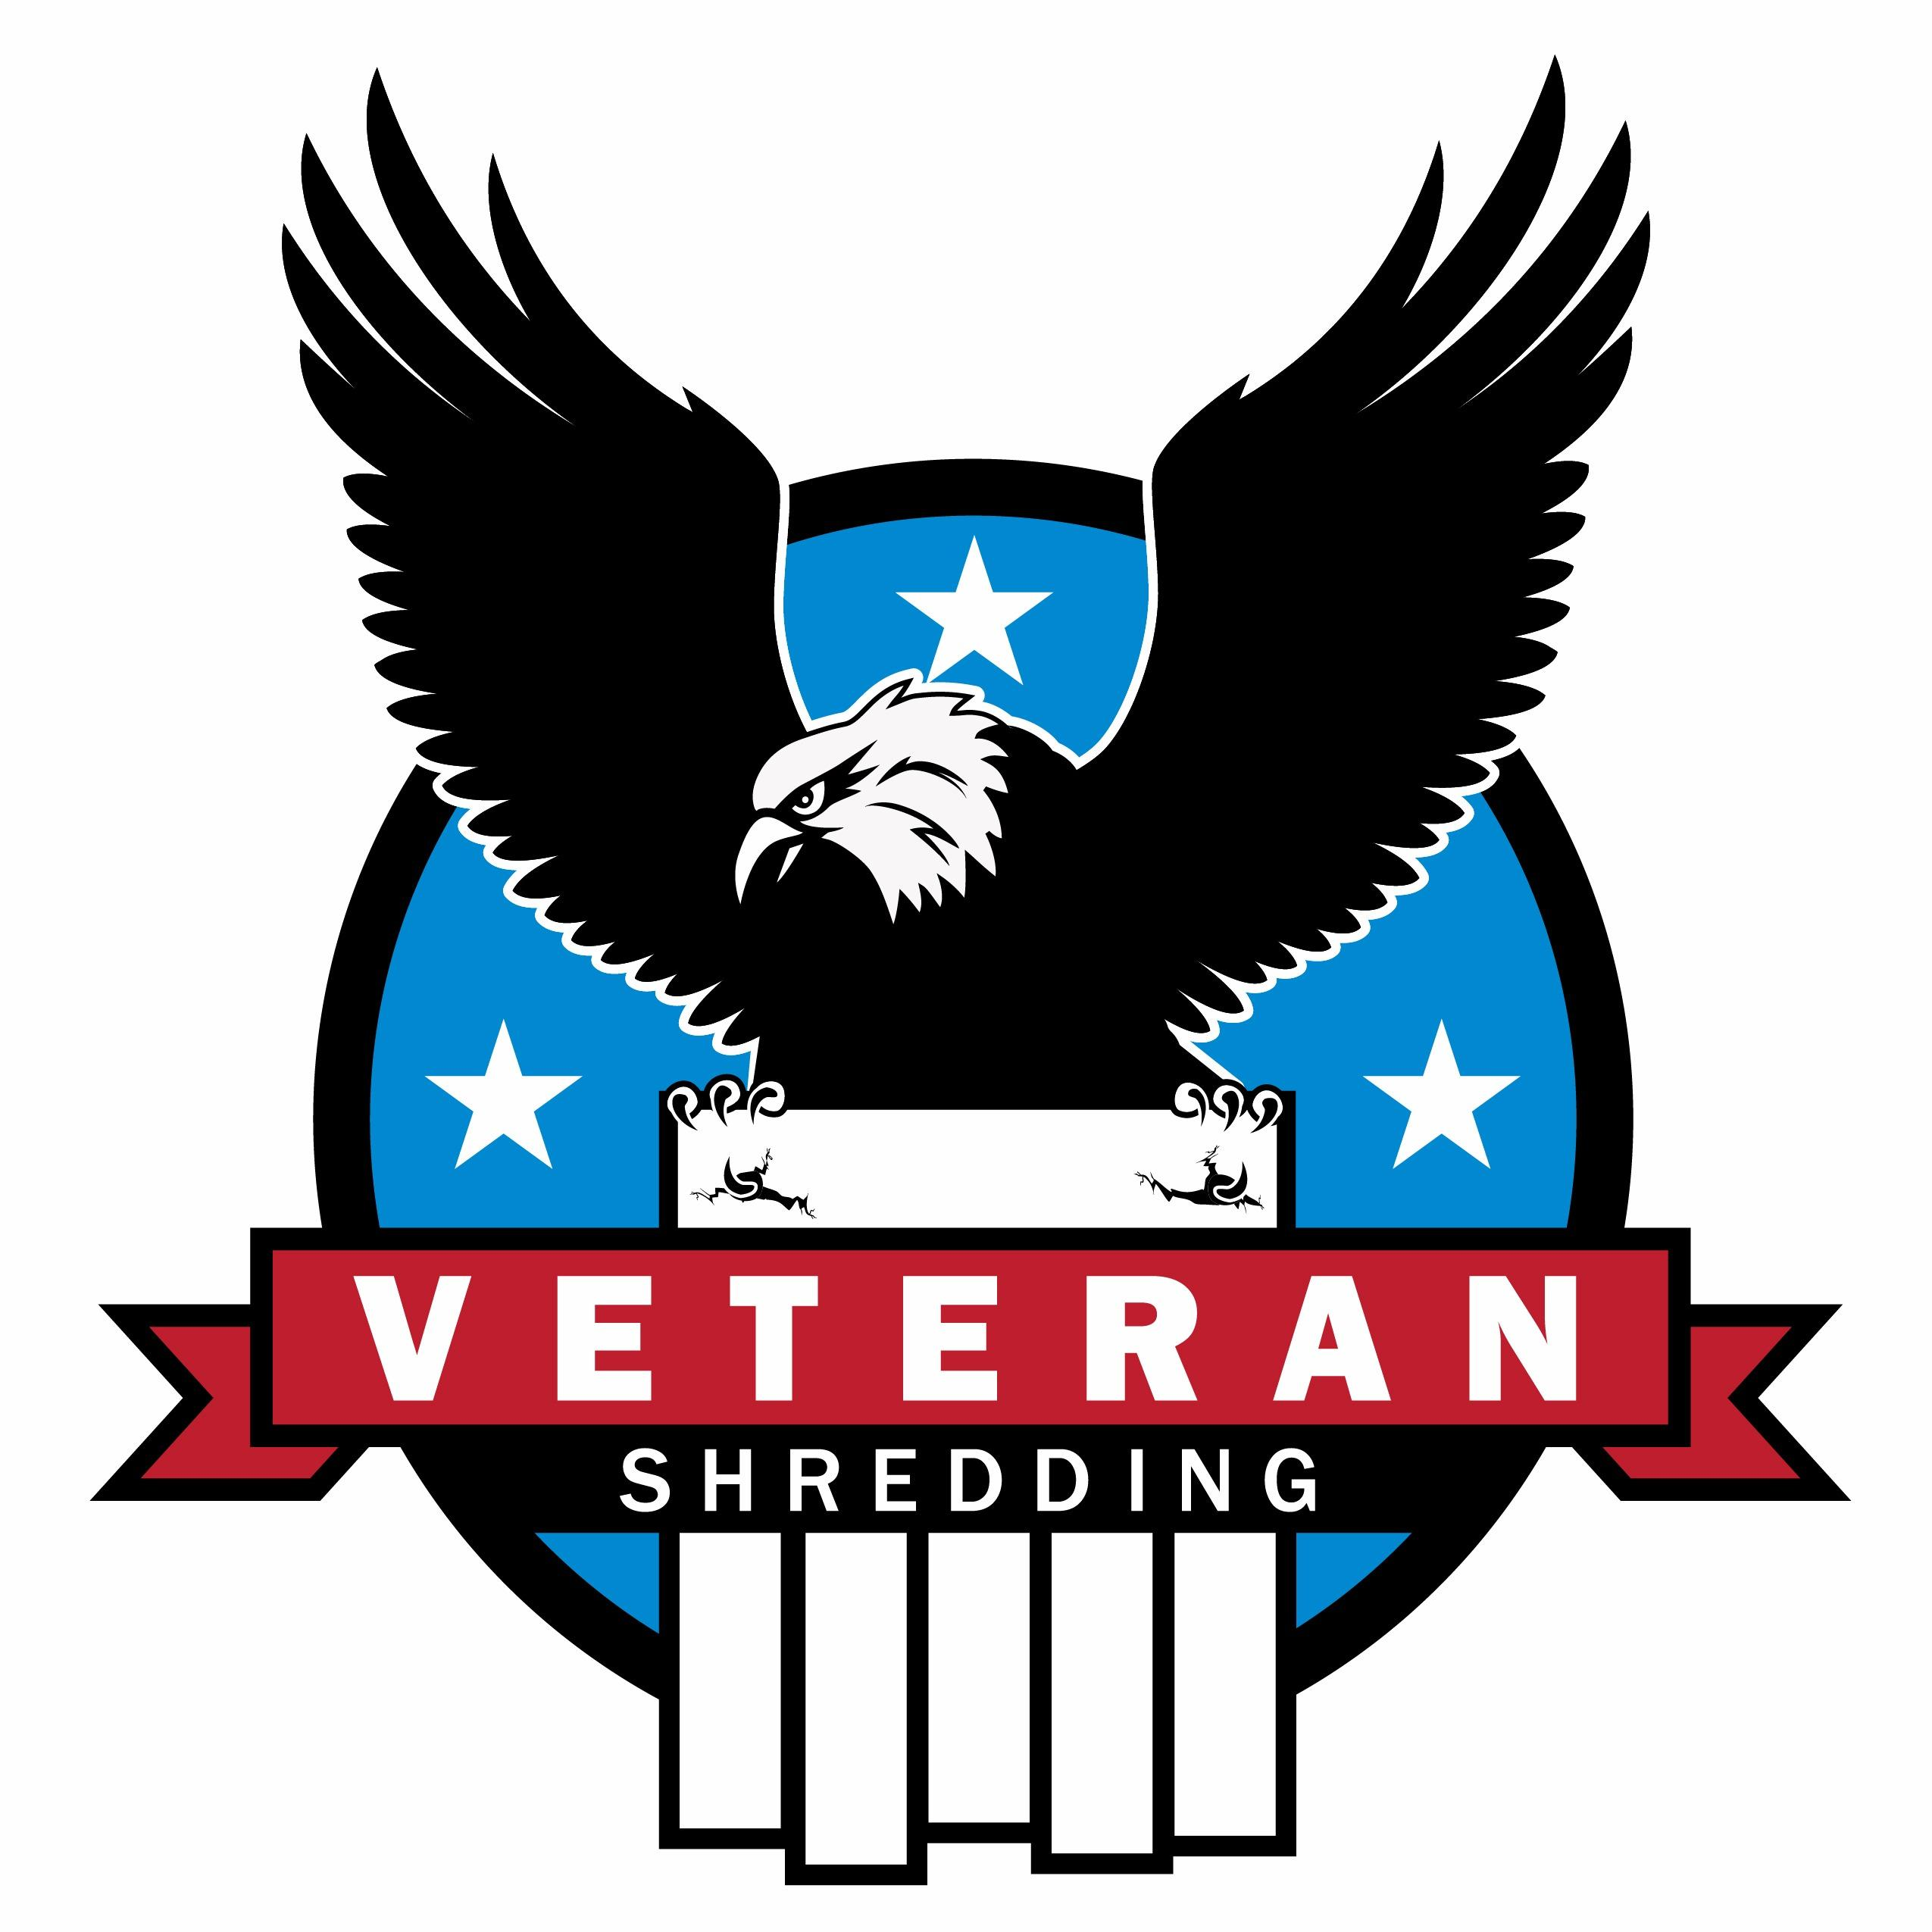 Veteran Shredding - Burnsville, MN - Paper Shredding